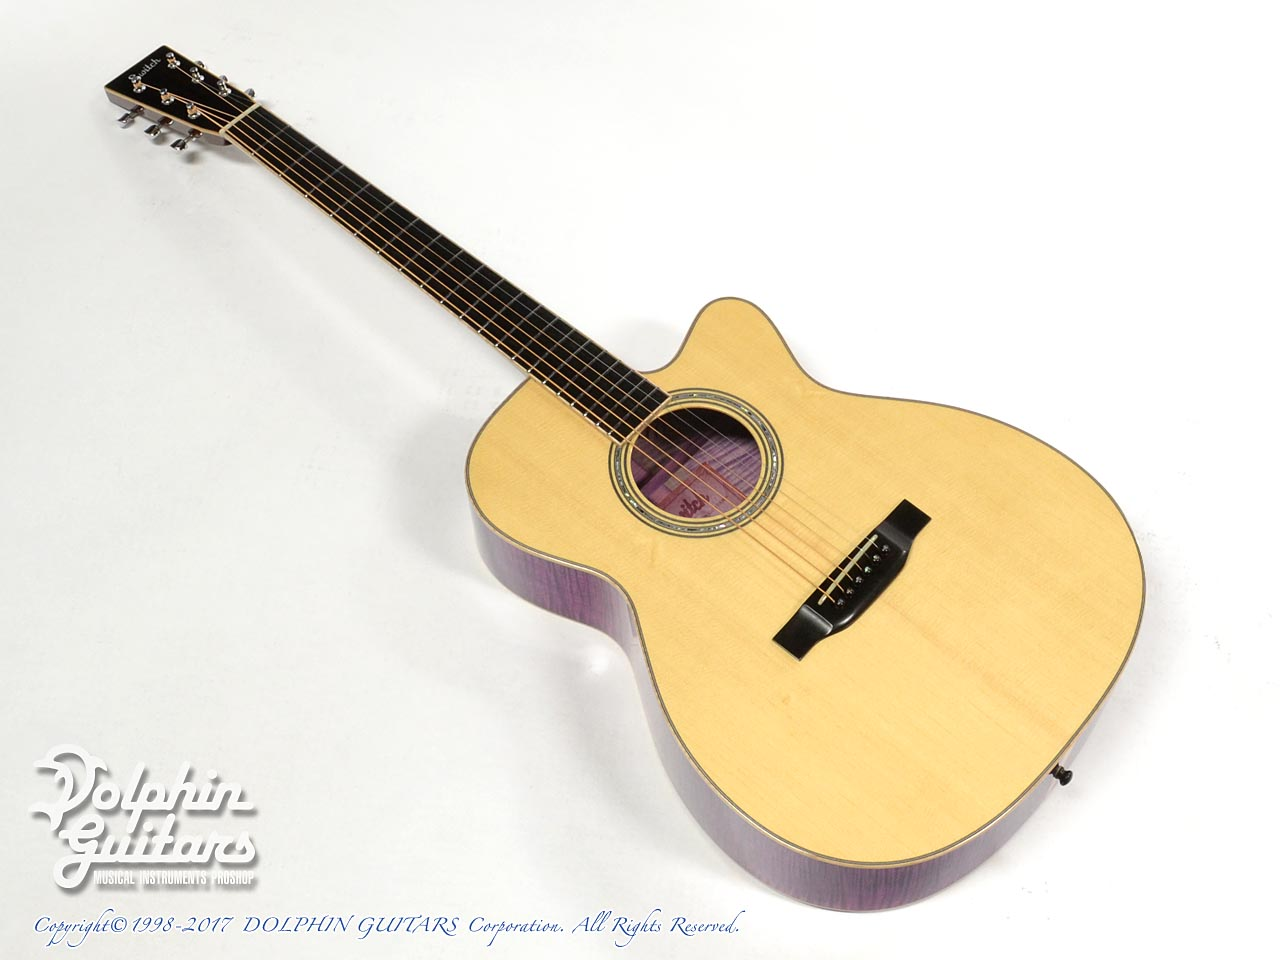 SWITCH: SCOM-3C E-FM (Engelmann Spruce & Flame Maple) (Murasakishikibu) (1)